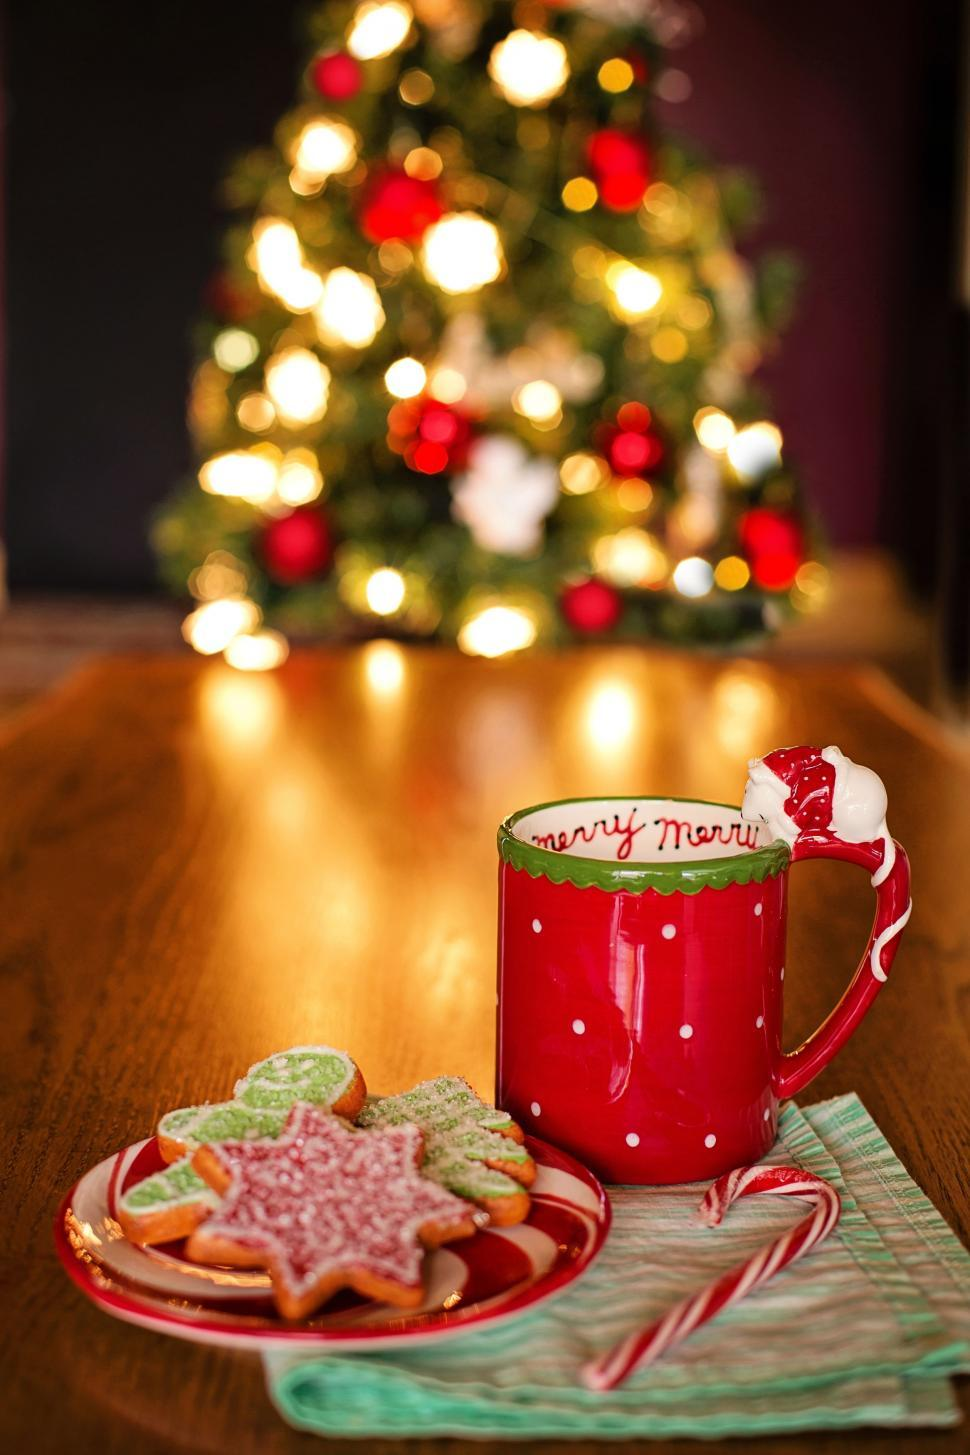 Free Stock Photo Of Red Coffee Mug With Cookies And Christmas Tree Online Download Latest Free Images And Free Illustrations